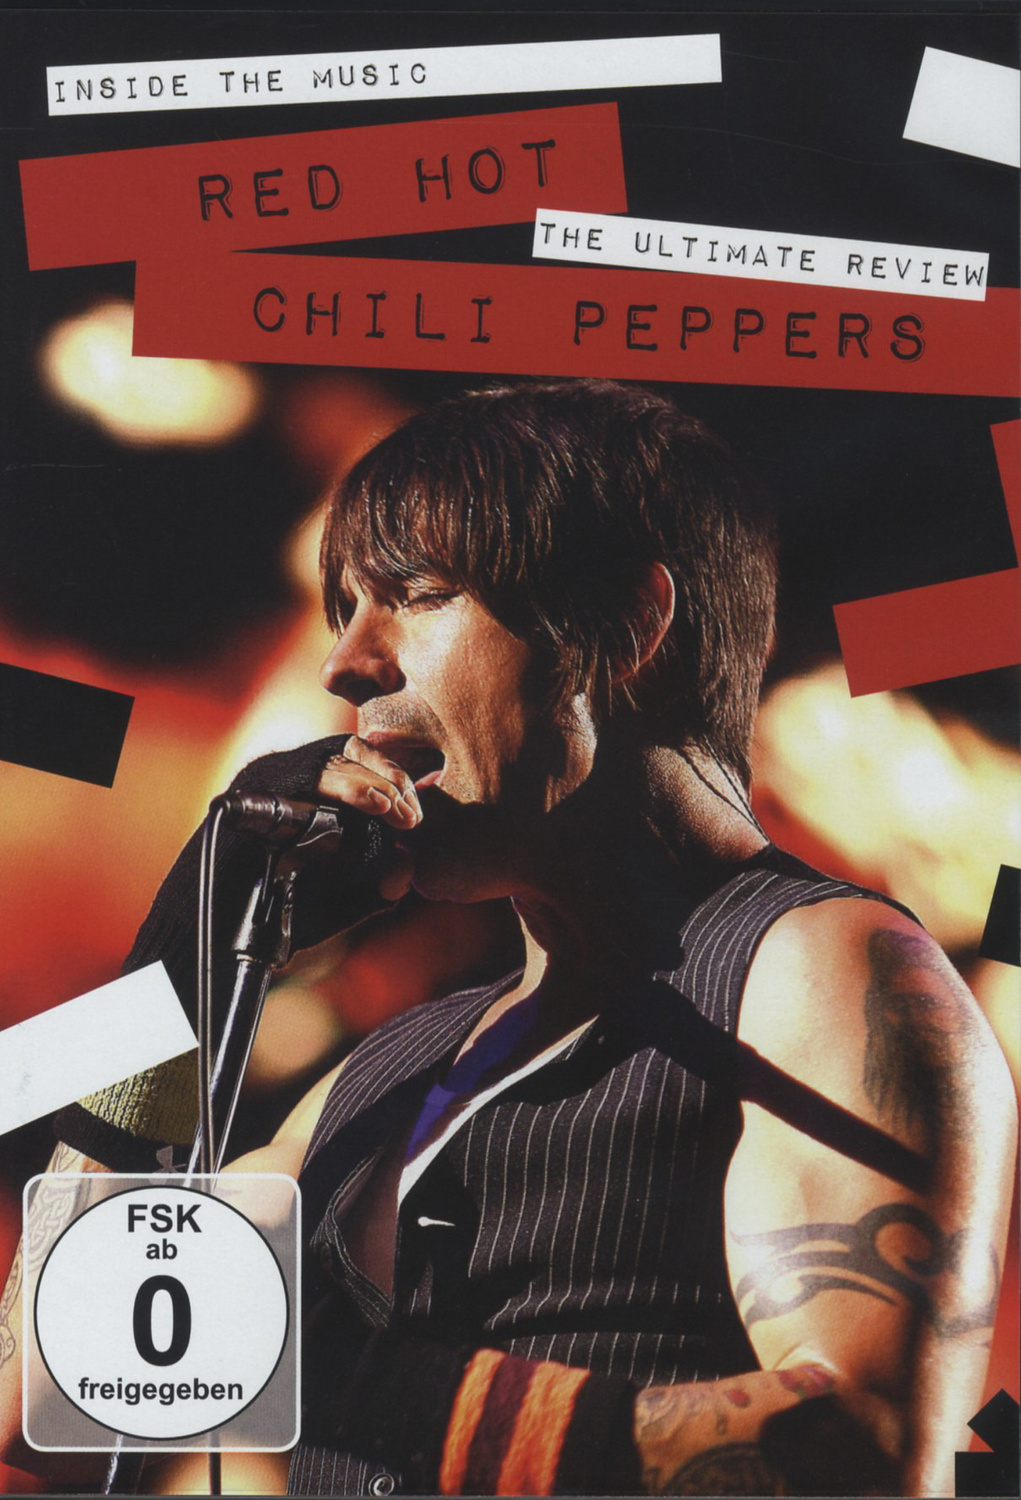 Inside the Music: Red Hot Chili Peppers - The Ultimate Review